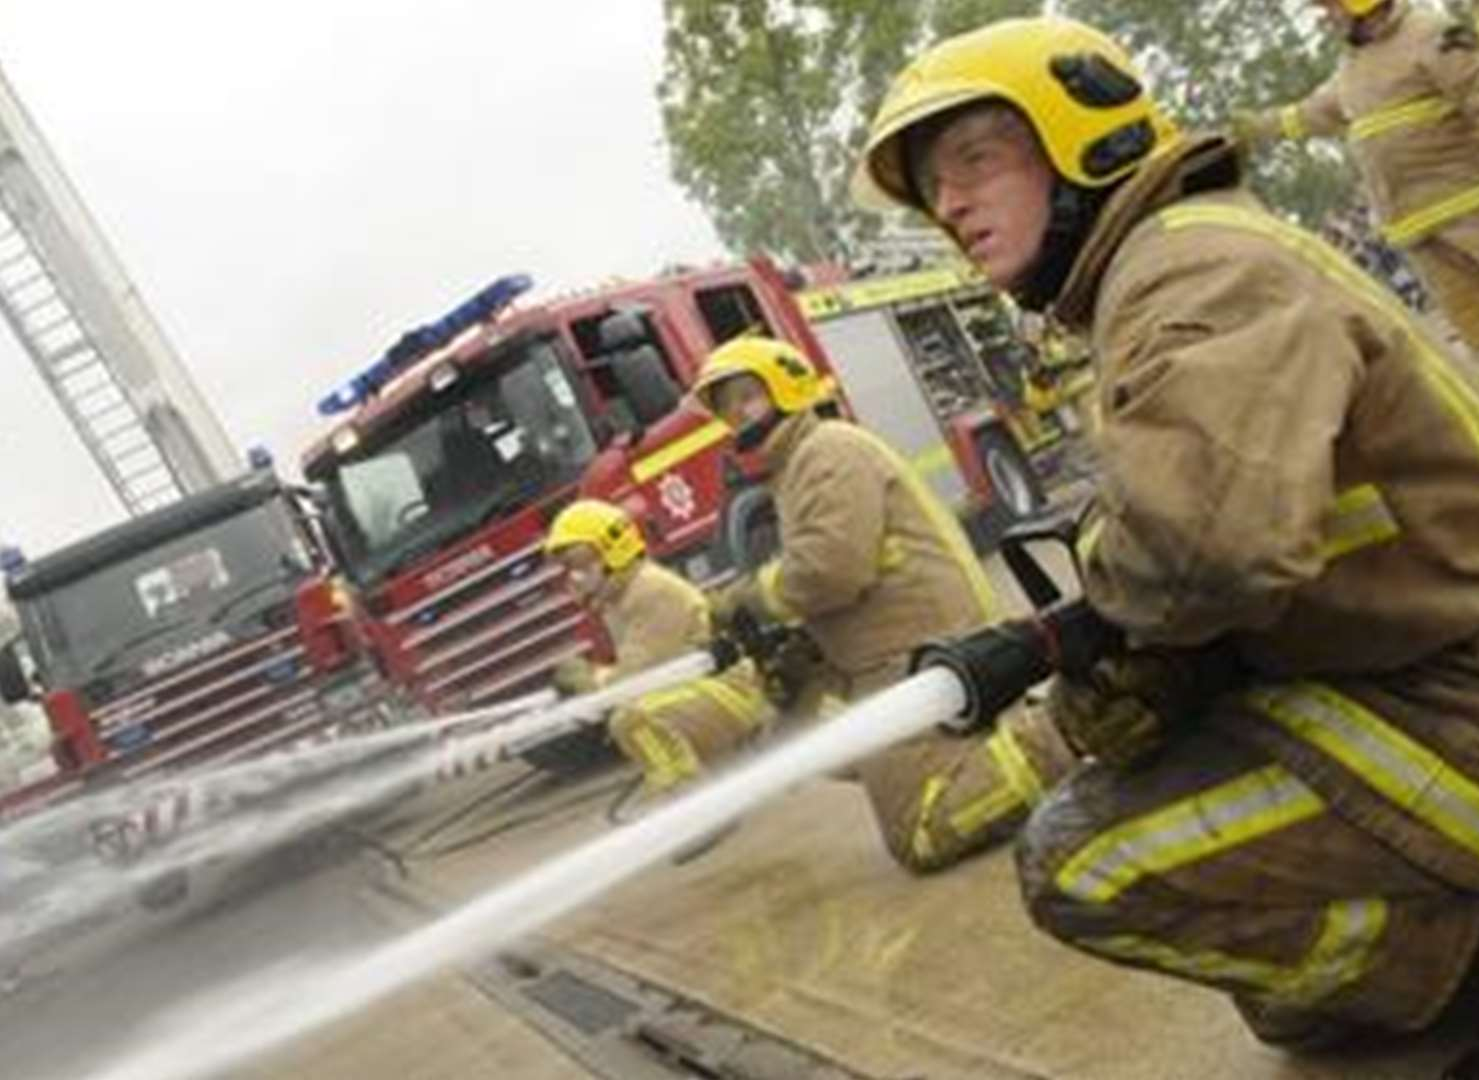 Firefighters strike for first time in decade